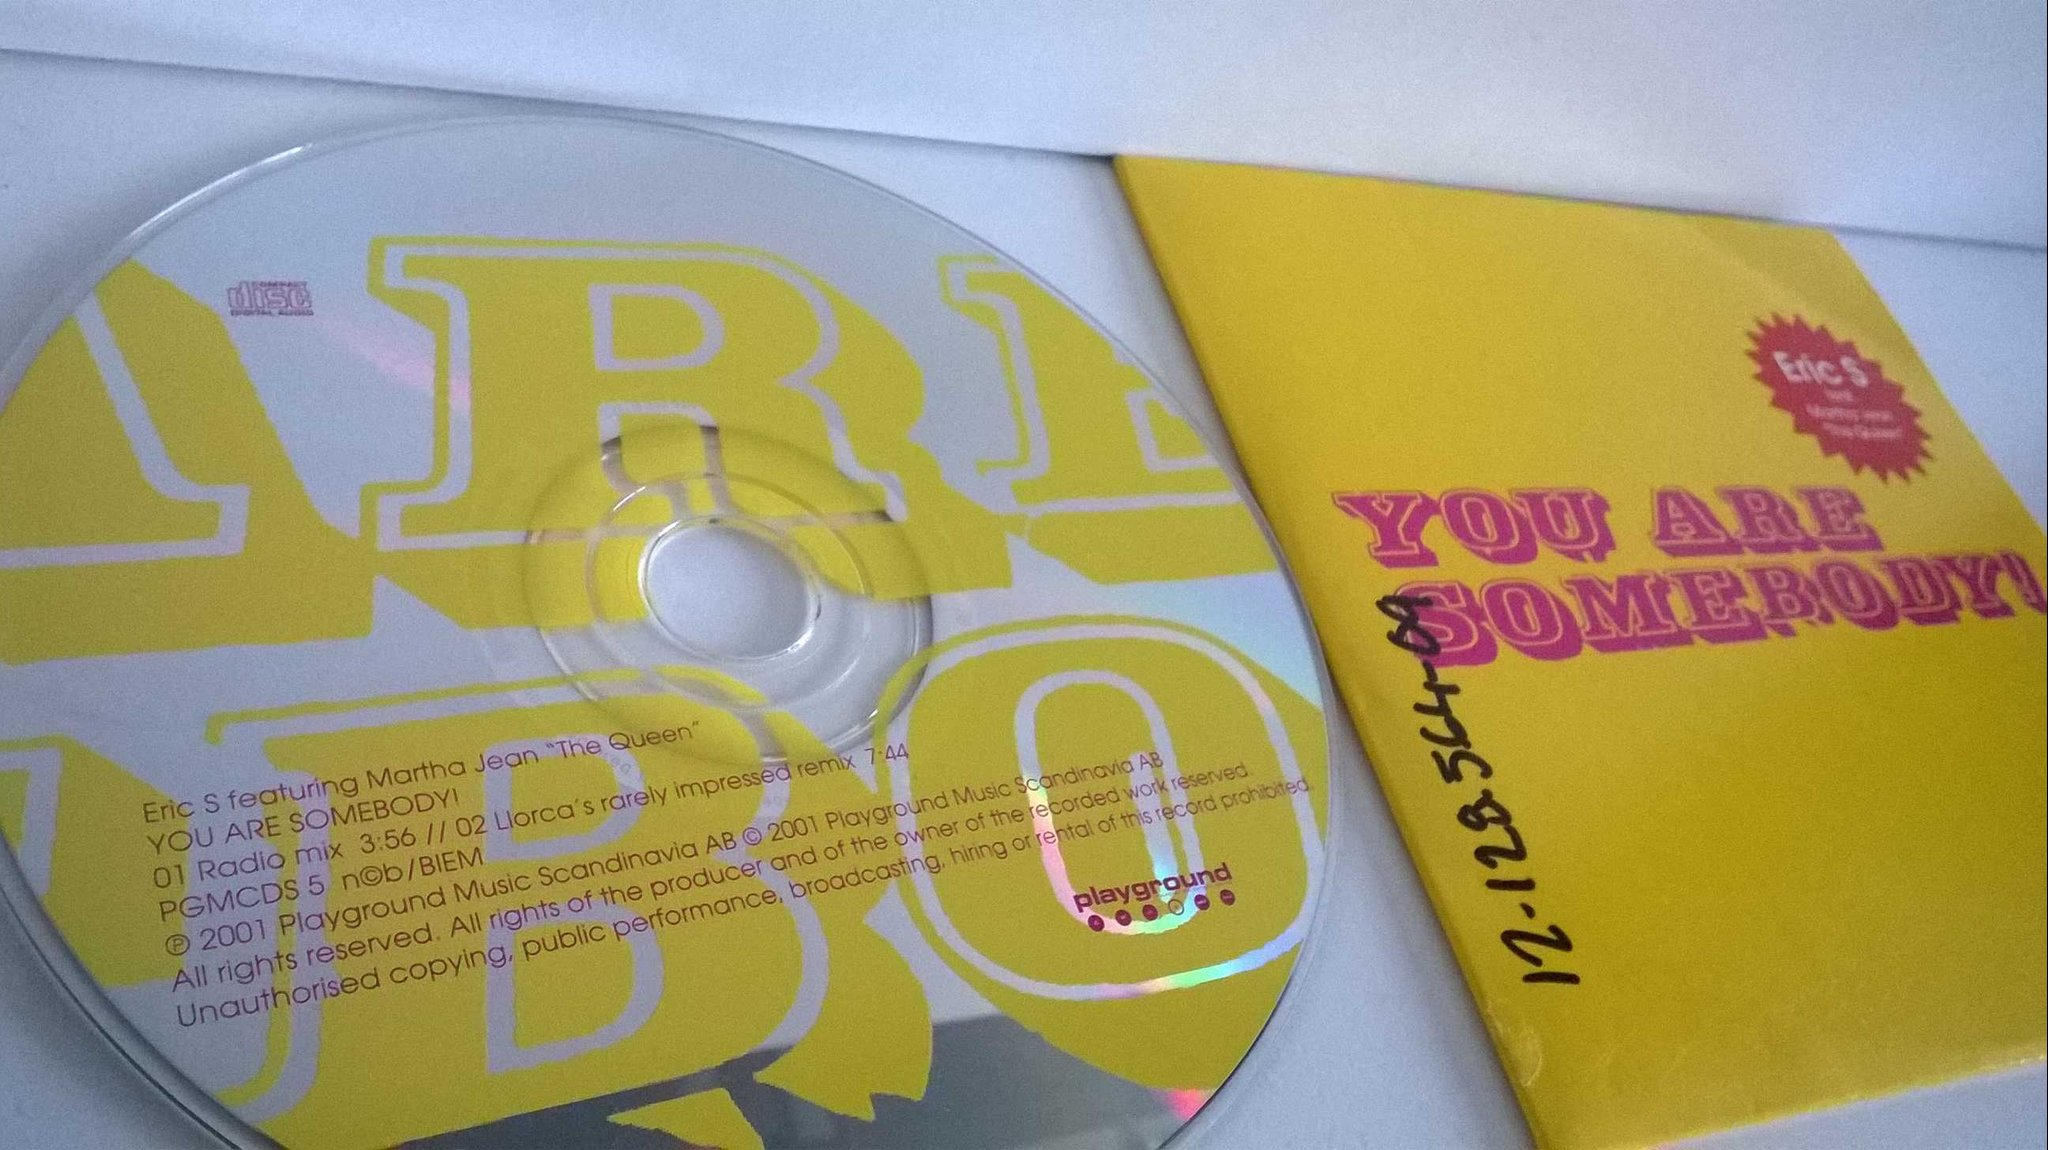 Eric S - You are somebody!, single CD